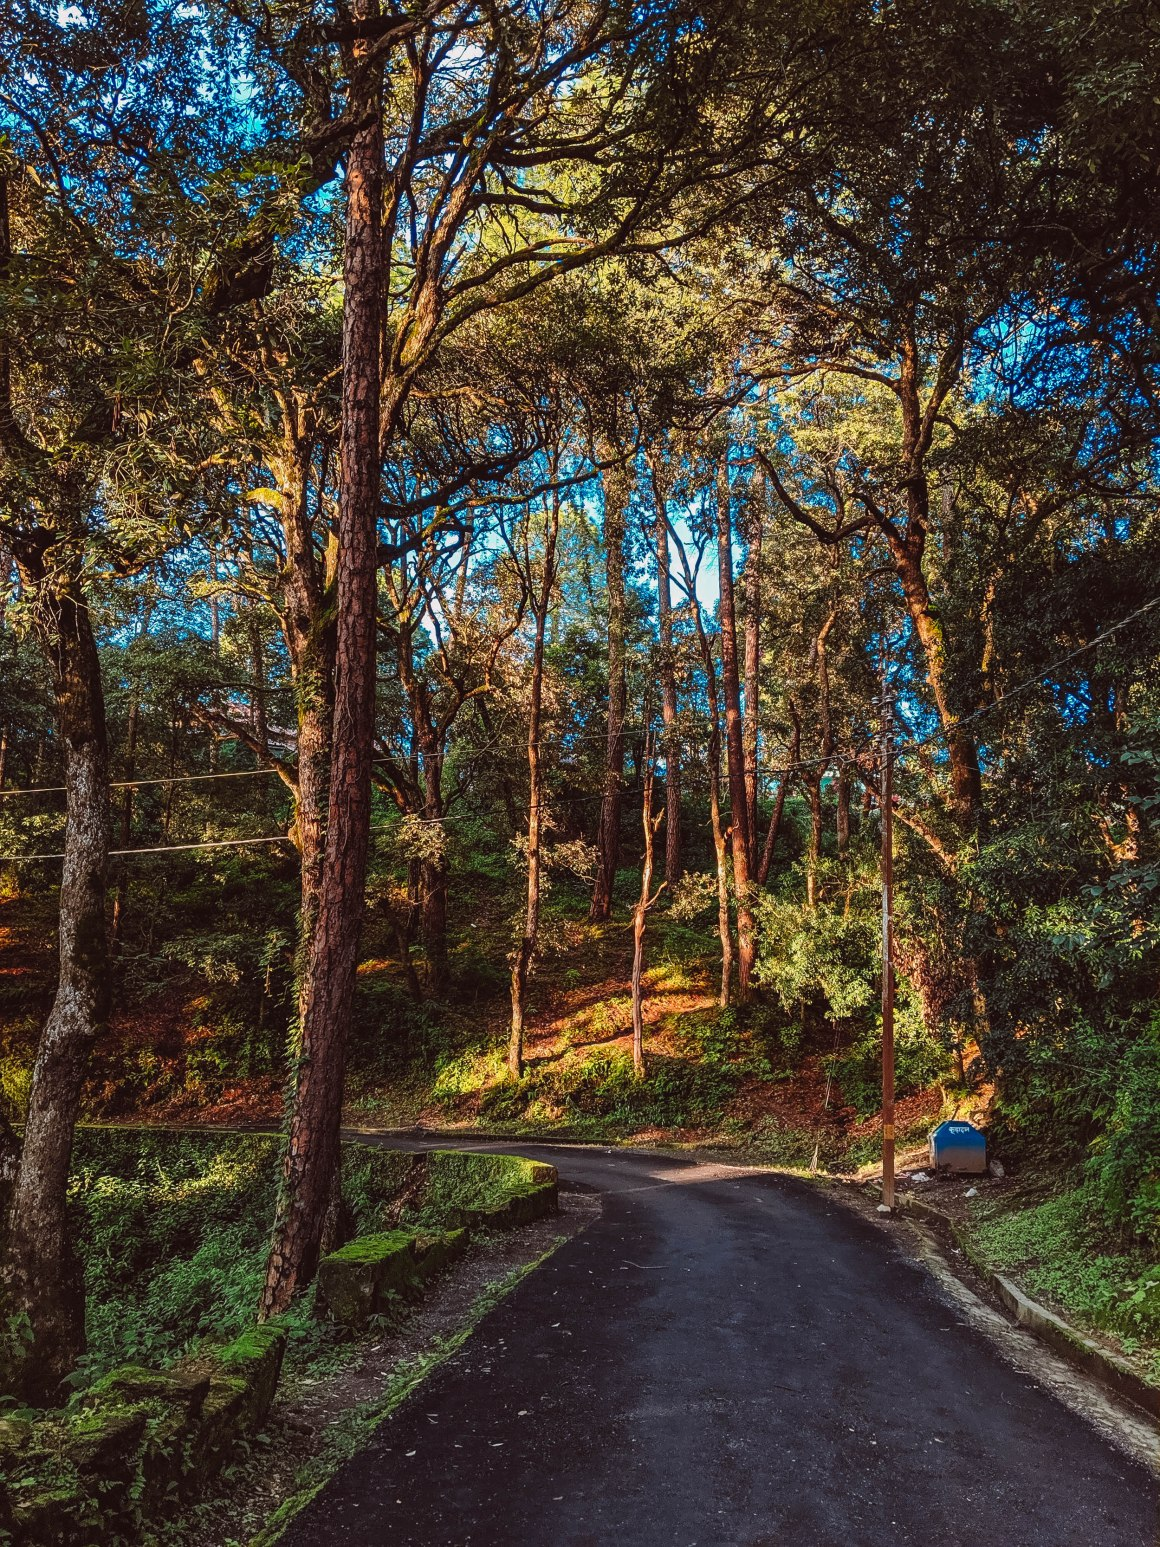 #EyesForDestinations, #EyesForIndia, #NAINAxRanikhet, Destination Photography, Landscape Photographer, Naina Redhu, Naina.co, Professional Photographer, Ranikhet, The Queen's Meadow, Uttarakhand, Family Vacation, Annual Vacation, Hills, Indian Hills, Hills in India, Photographer India, Blogger India, Travel Photographer, Travel Blogger, Photo Album